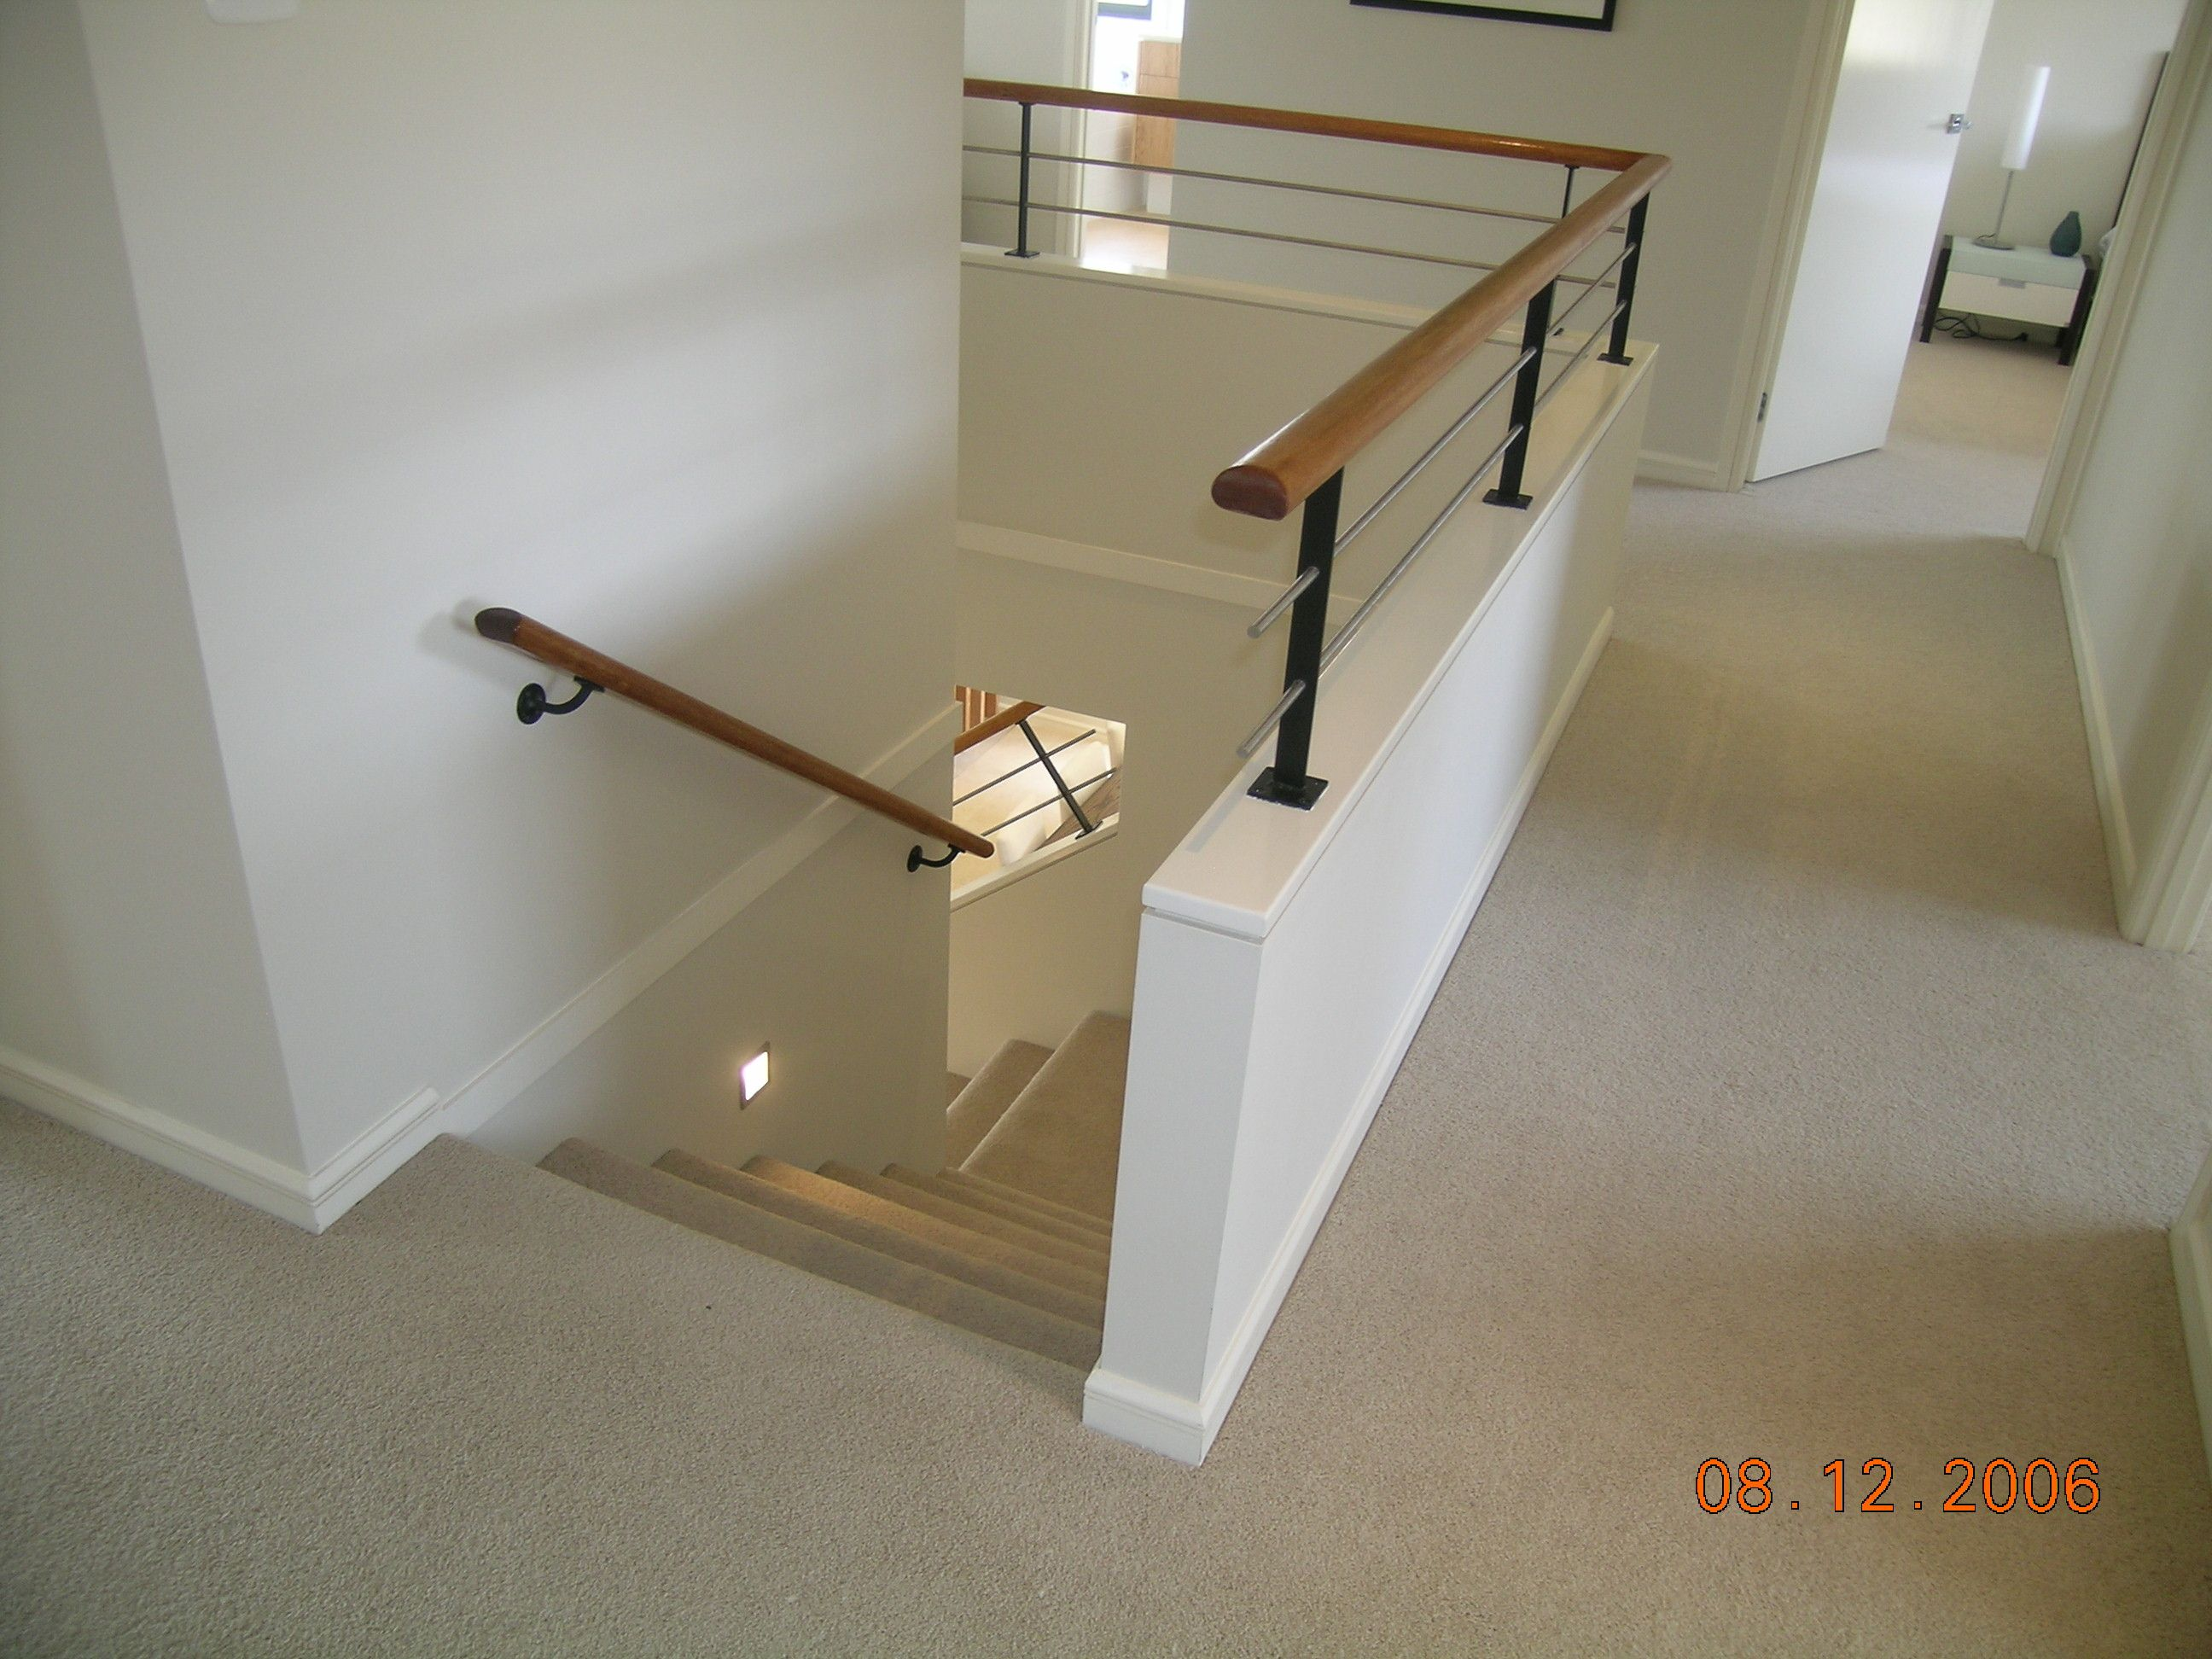 Half Wall Timber Handrail Stainless Steel Rails And Black Powder Coated Posts Stair Loft Railing Interior Railings Stair Railing Kits